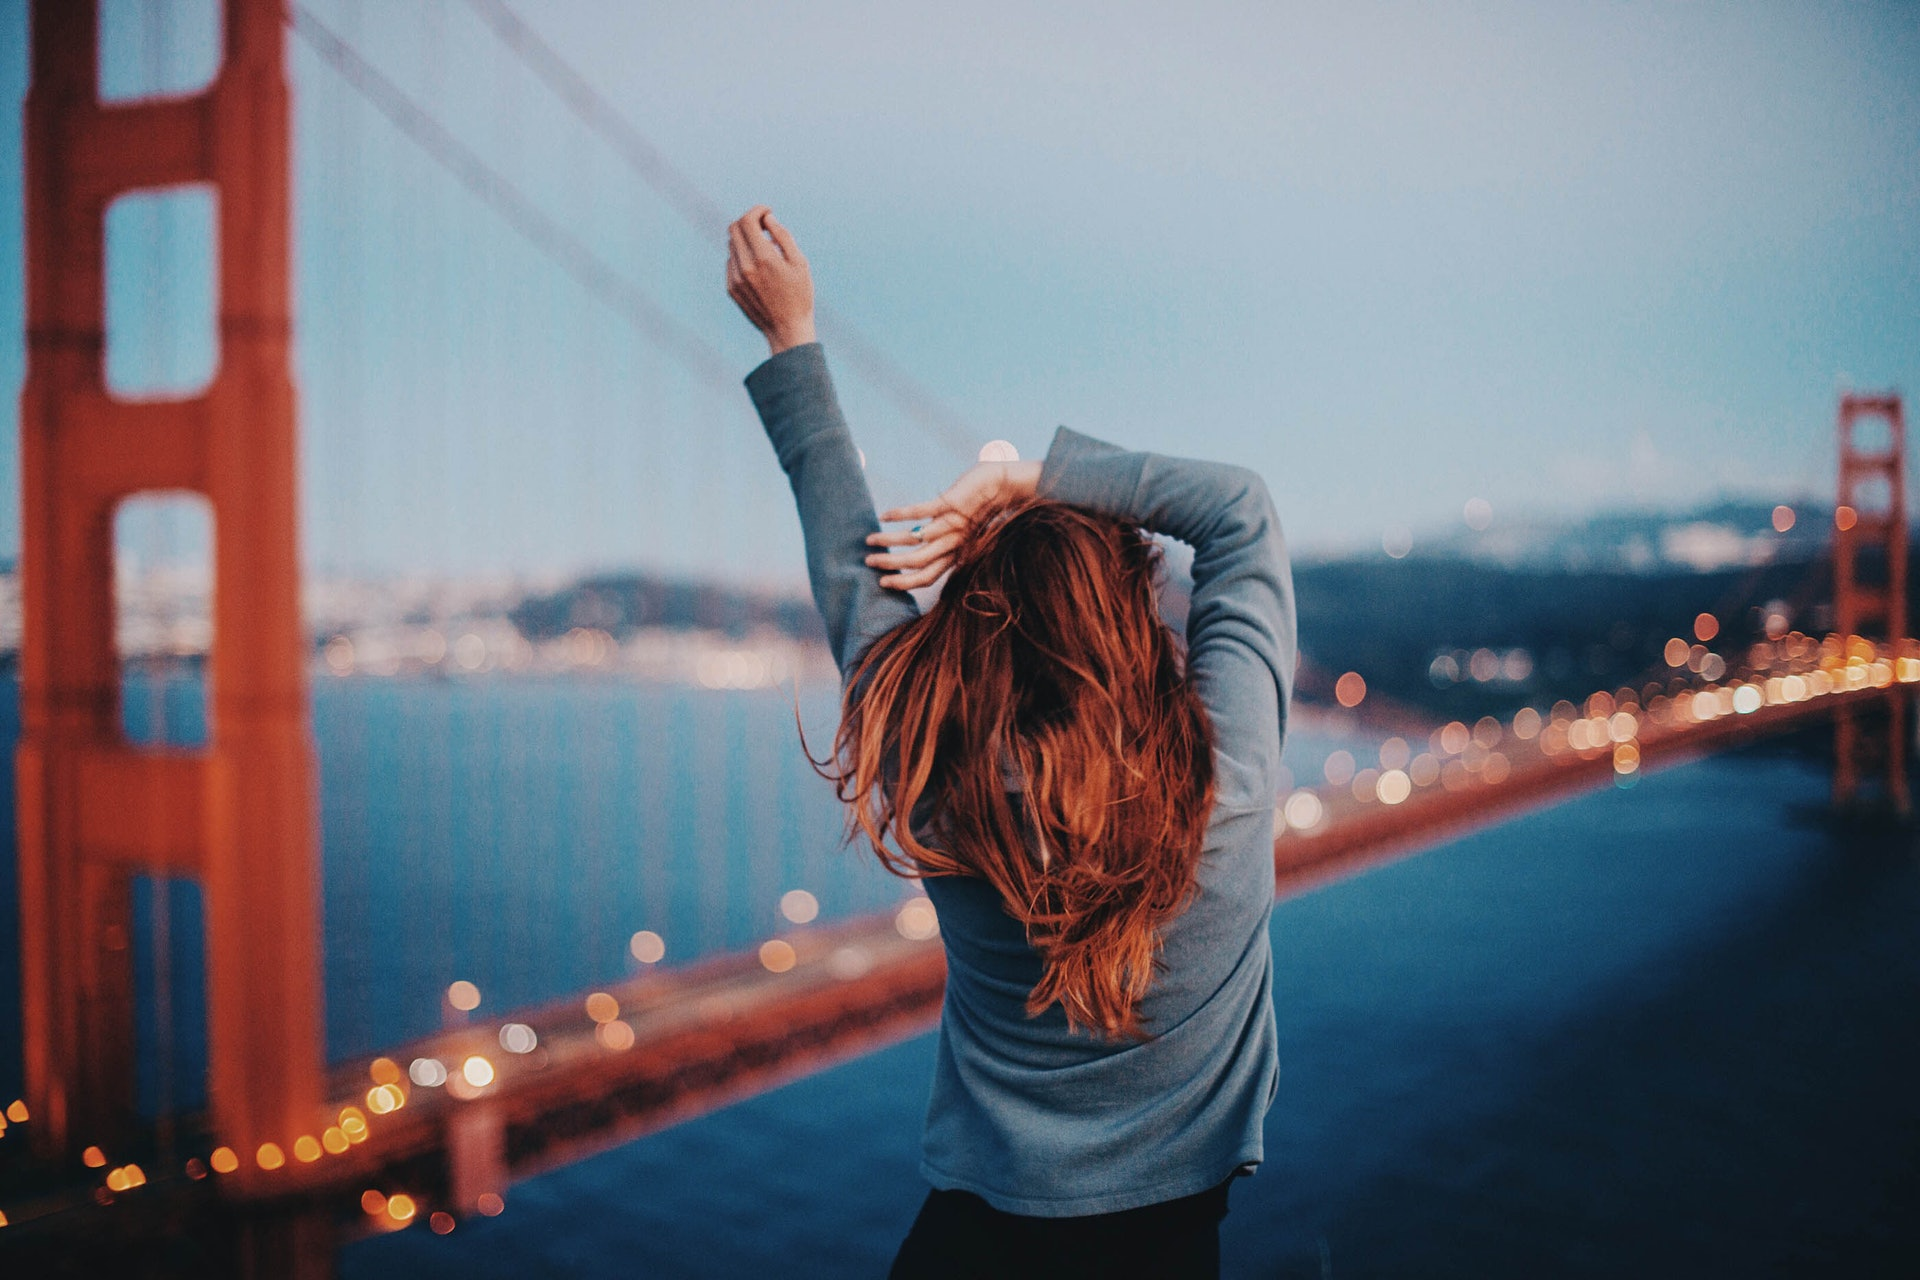 Young woman with Golden Gate Bridge in the background, San Francisco